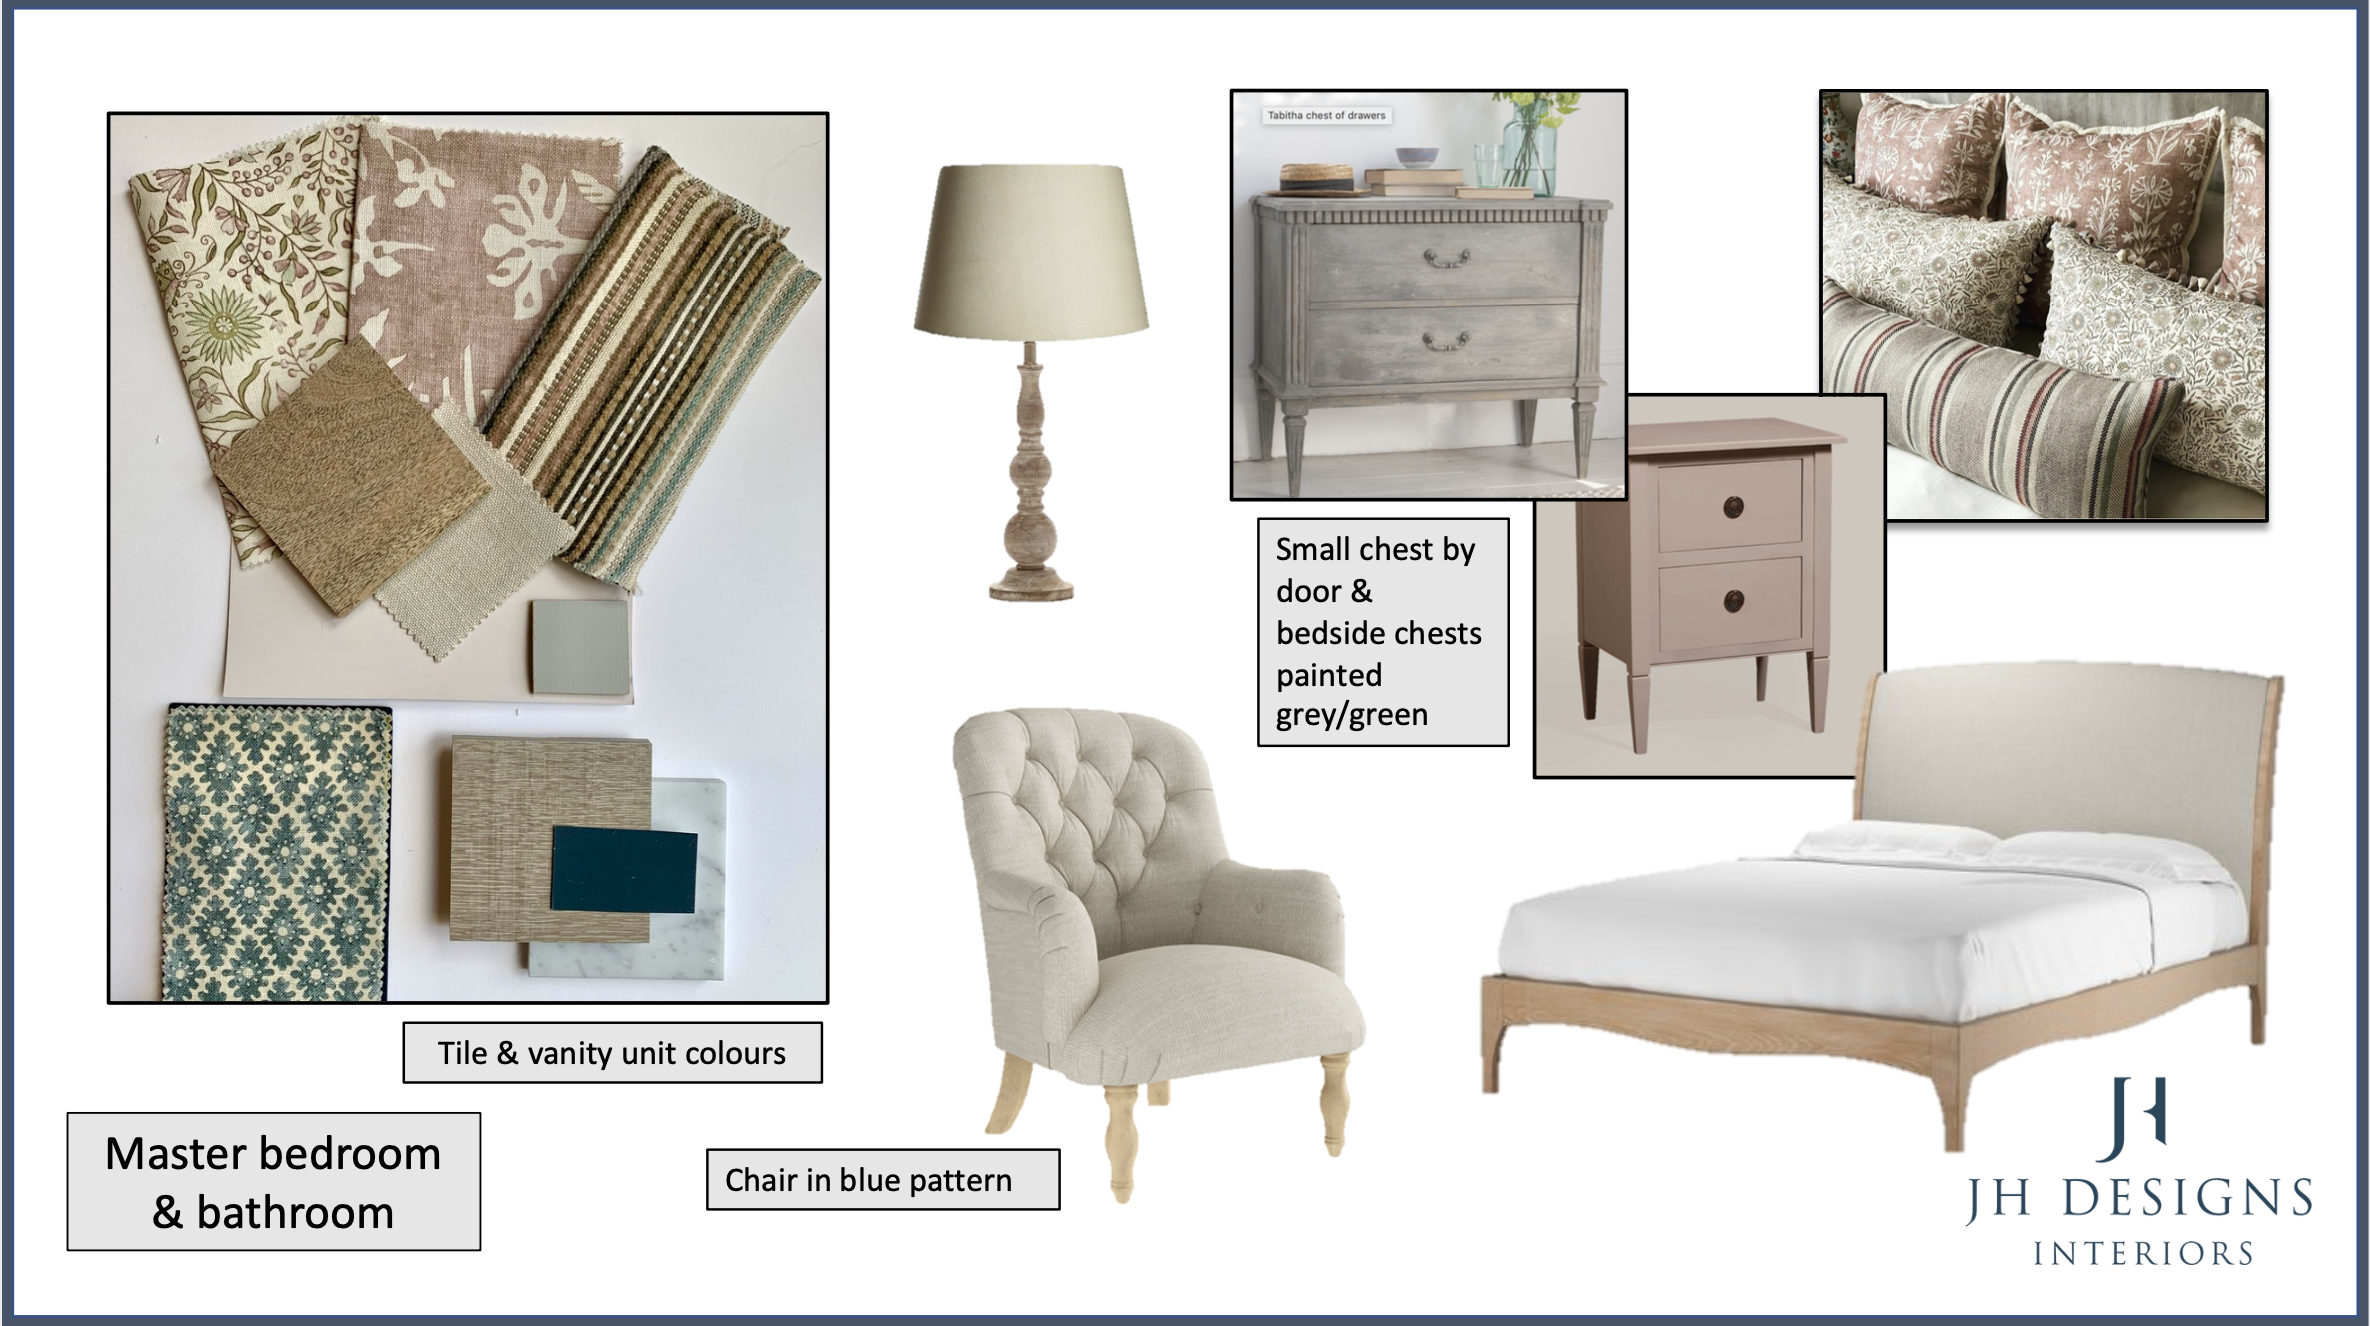 mood board showing pink & earth colours with touch of blue